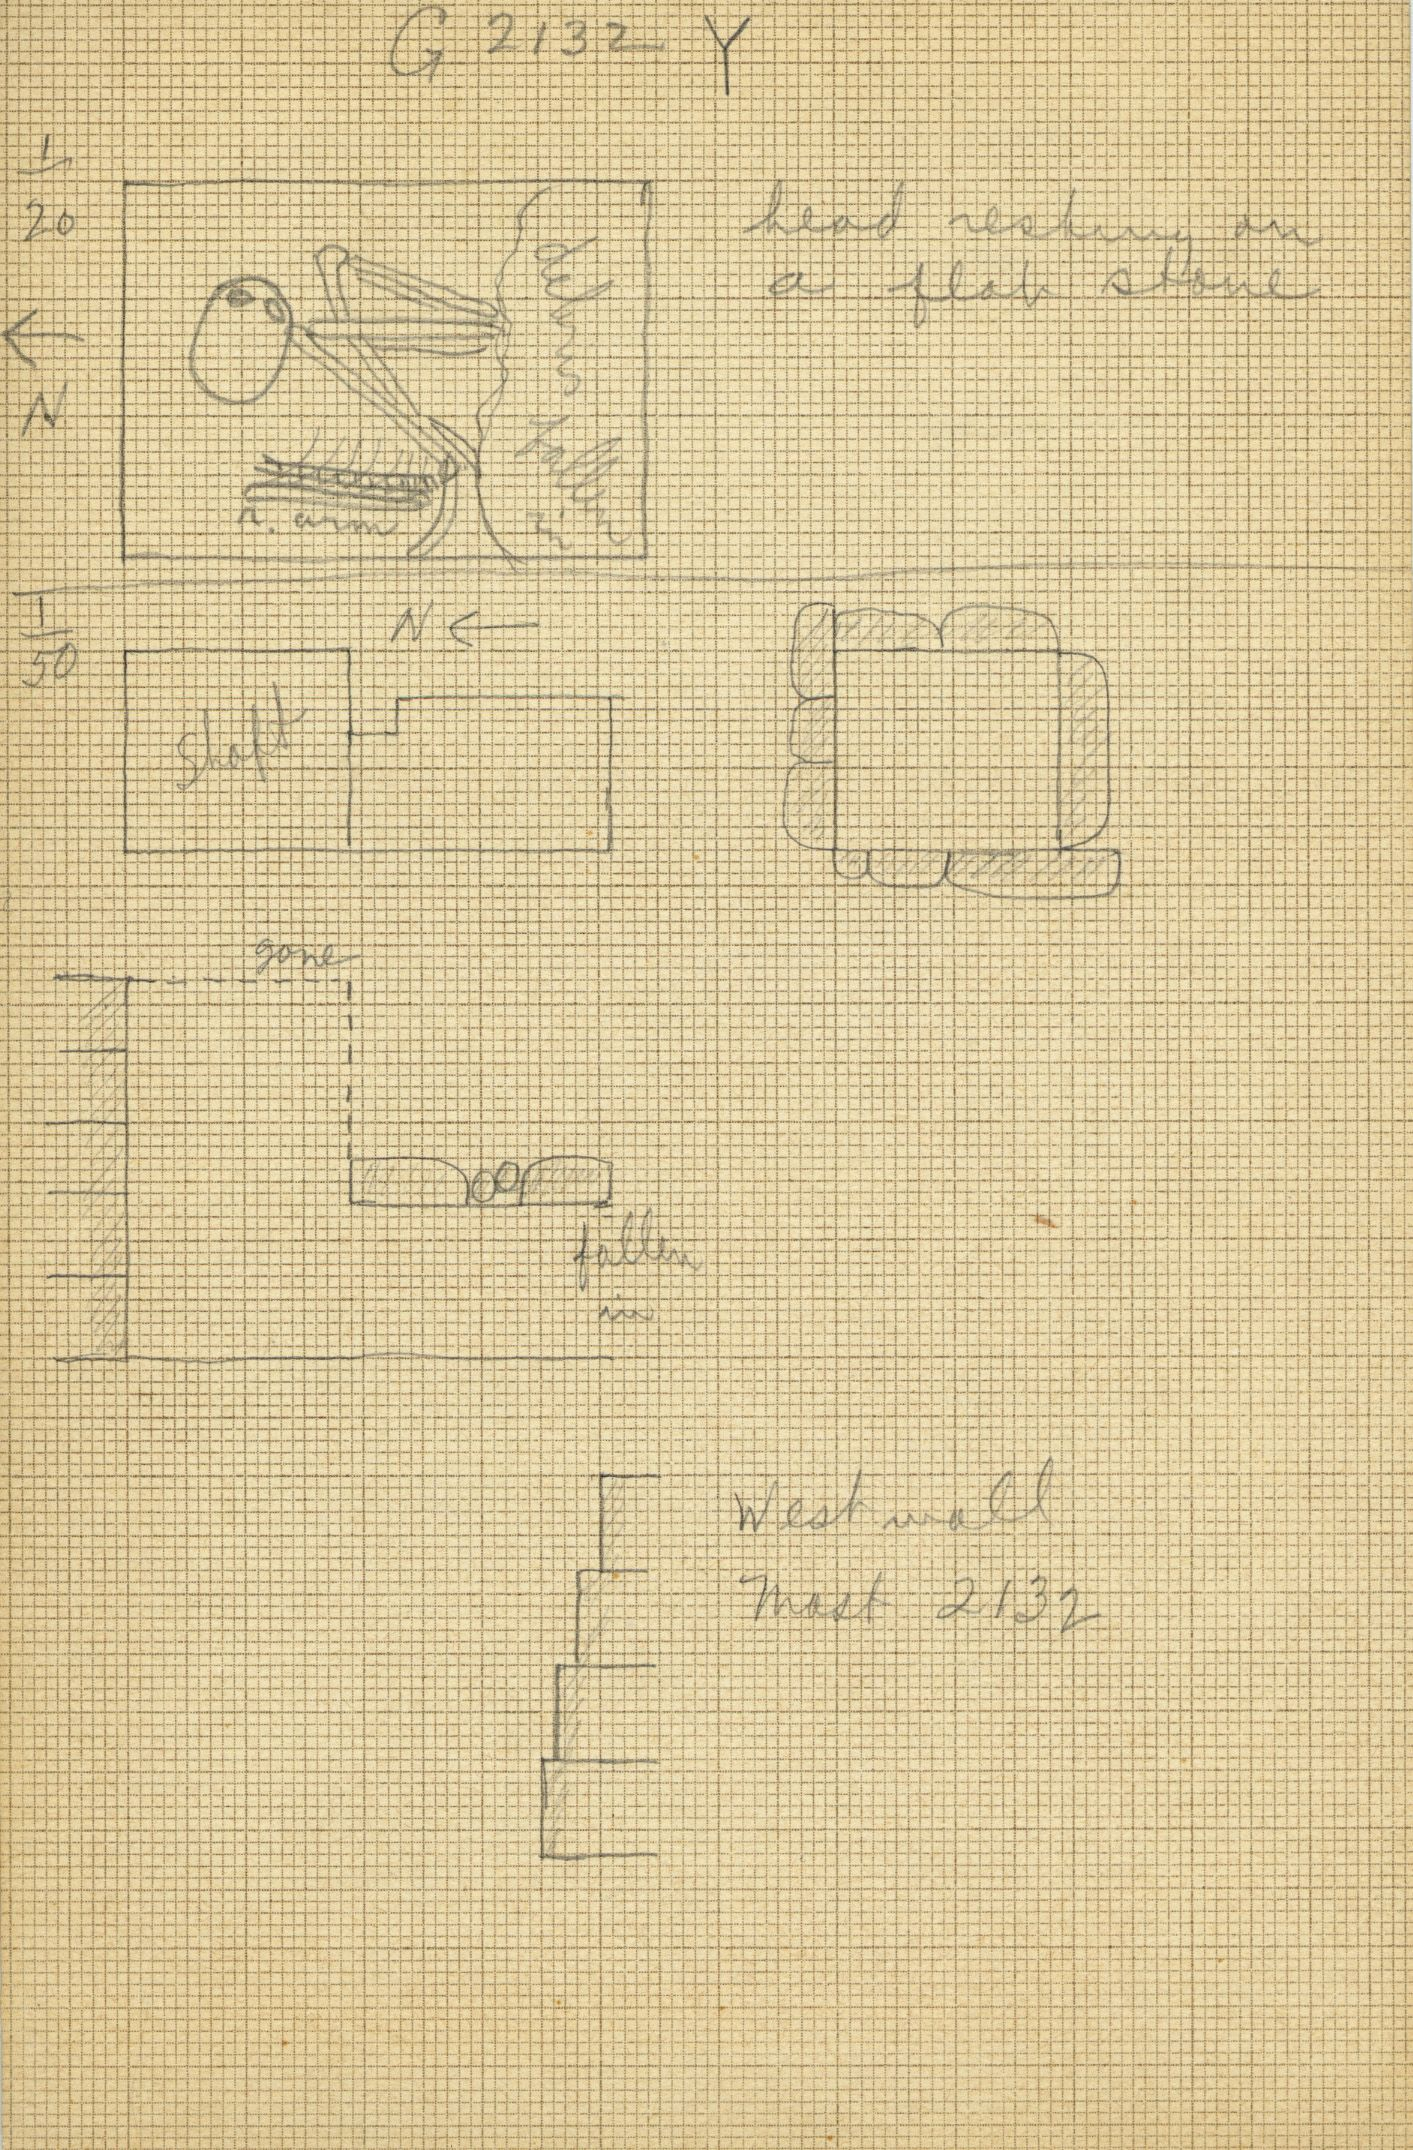 Maps and plans: G 2132, Shaft Y